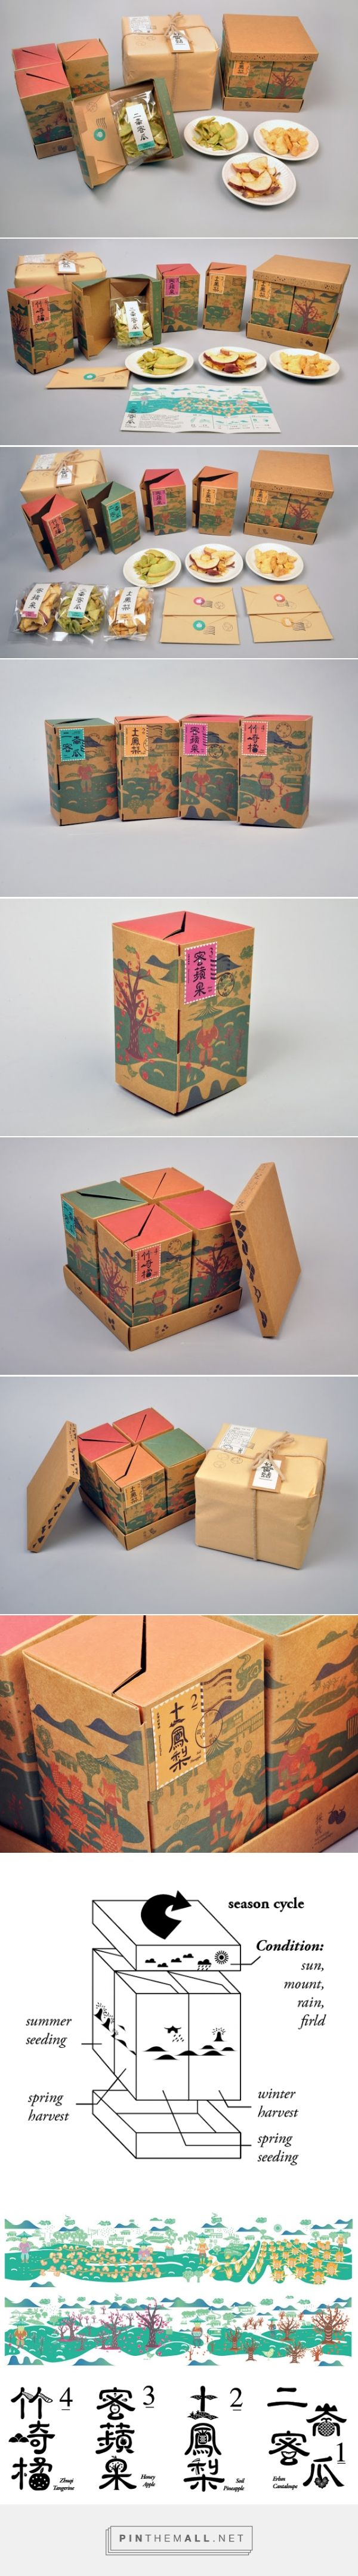 Taiwan Good Fruit (Student Project)  on  Packaging of the World - Creative Package Design Gallery - http://www.packagingoftheworld.com/2015/09/taiwan-good-fruit-student-project.html